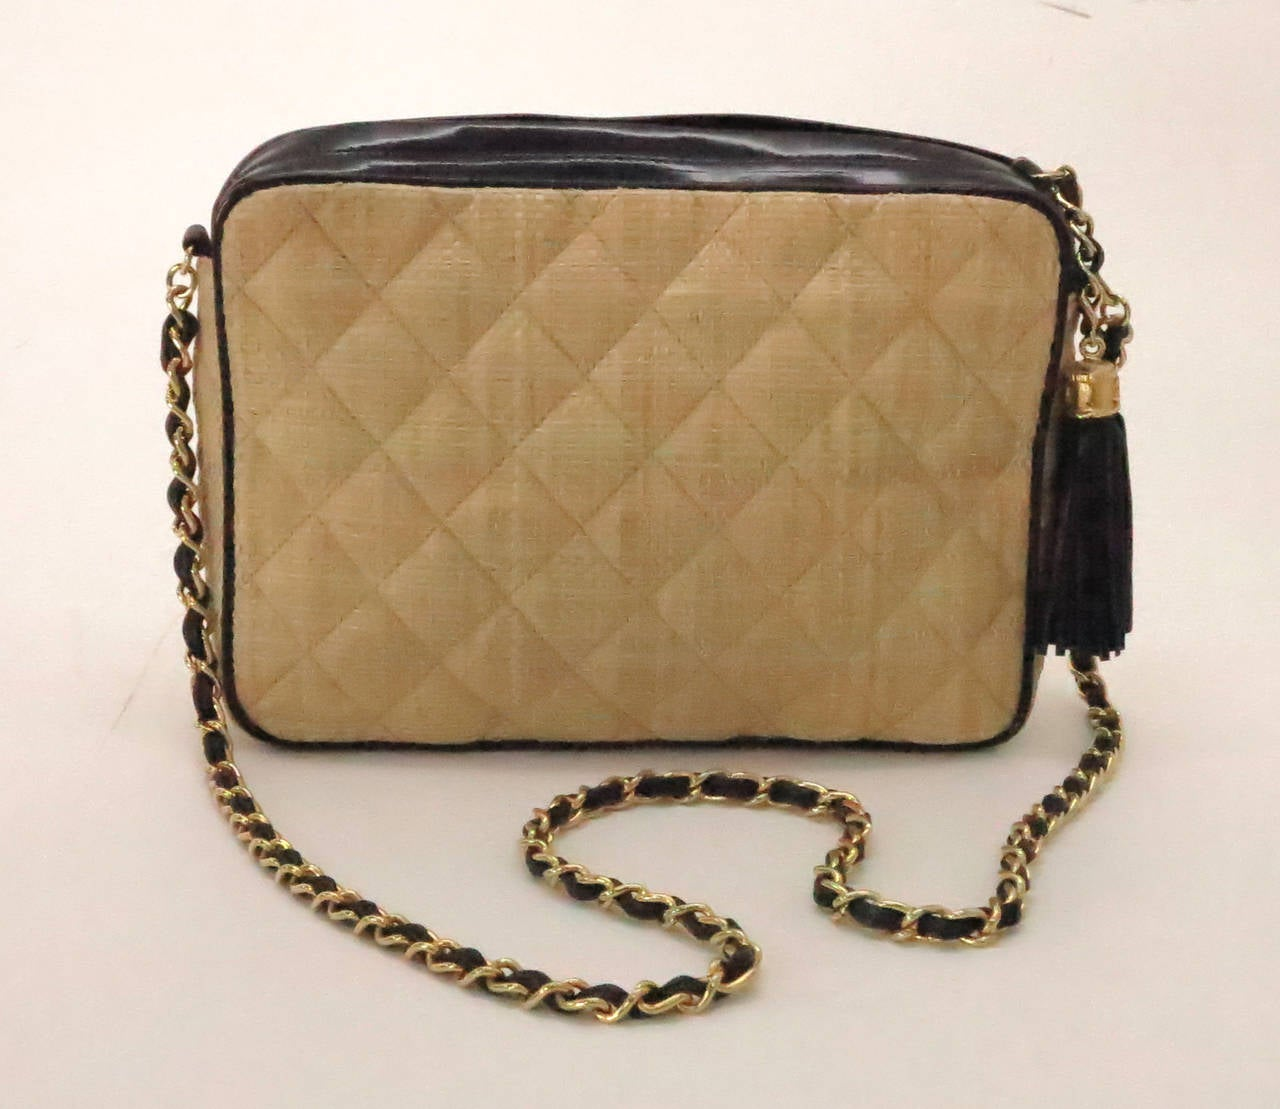 Vintage Chanel quilted raffia & patent leather camera bag In Excellent Condition For Sale In West Palm Beach, FL